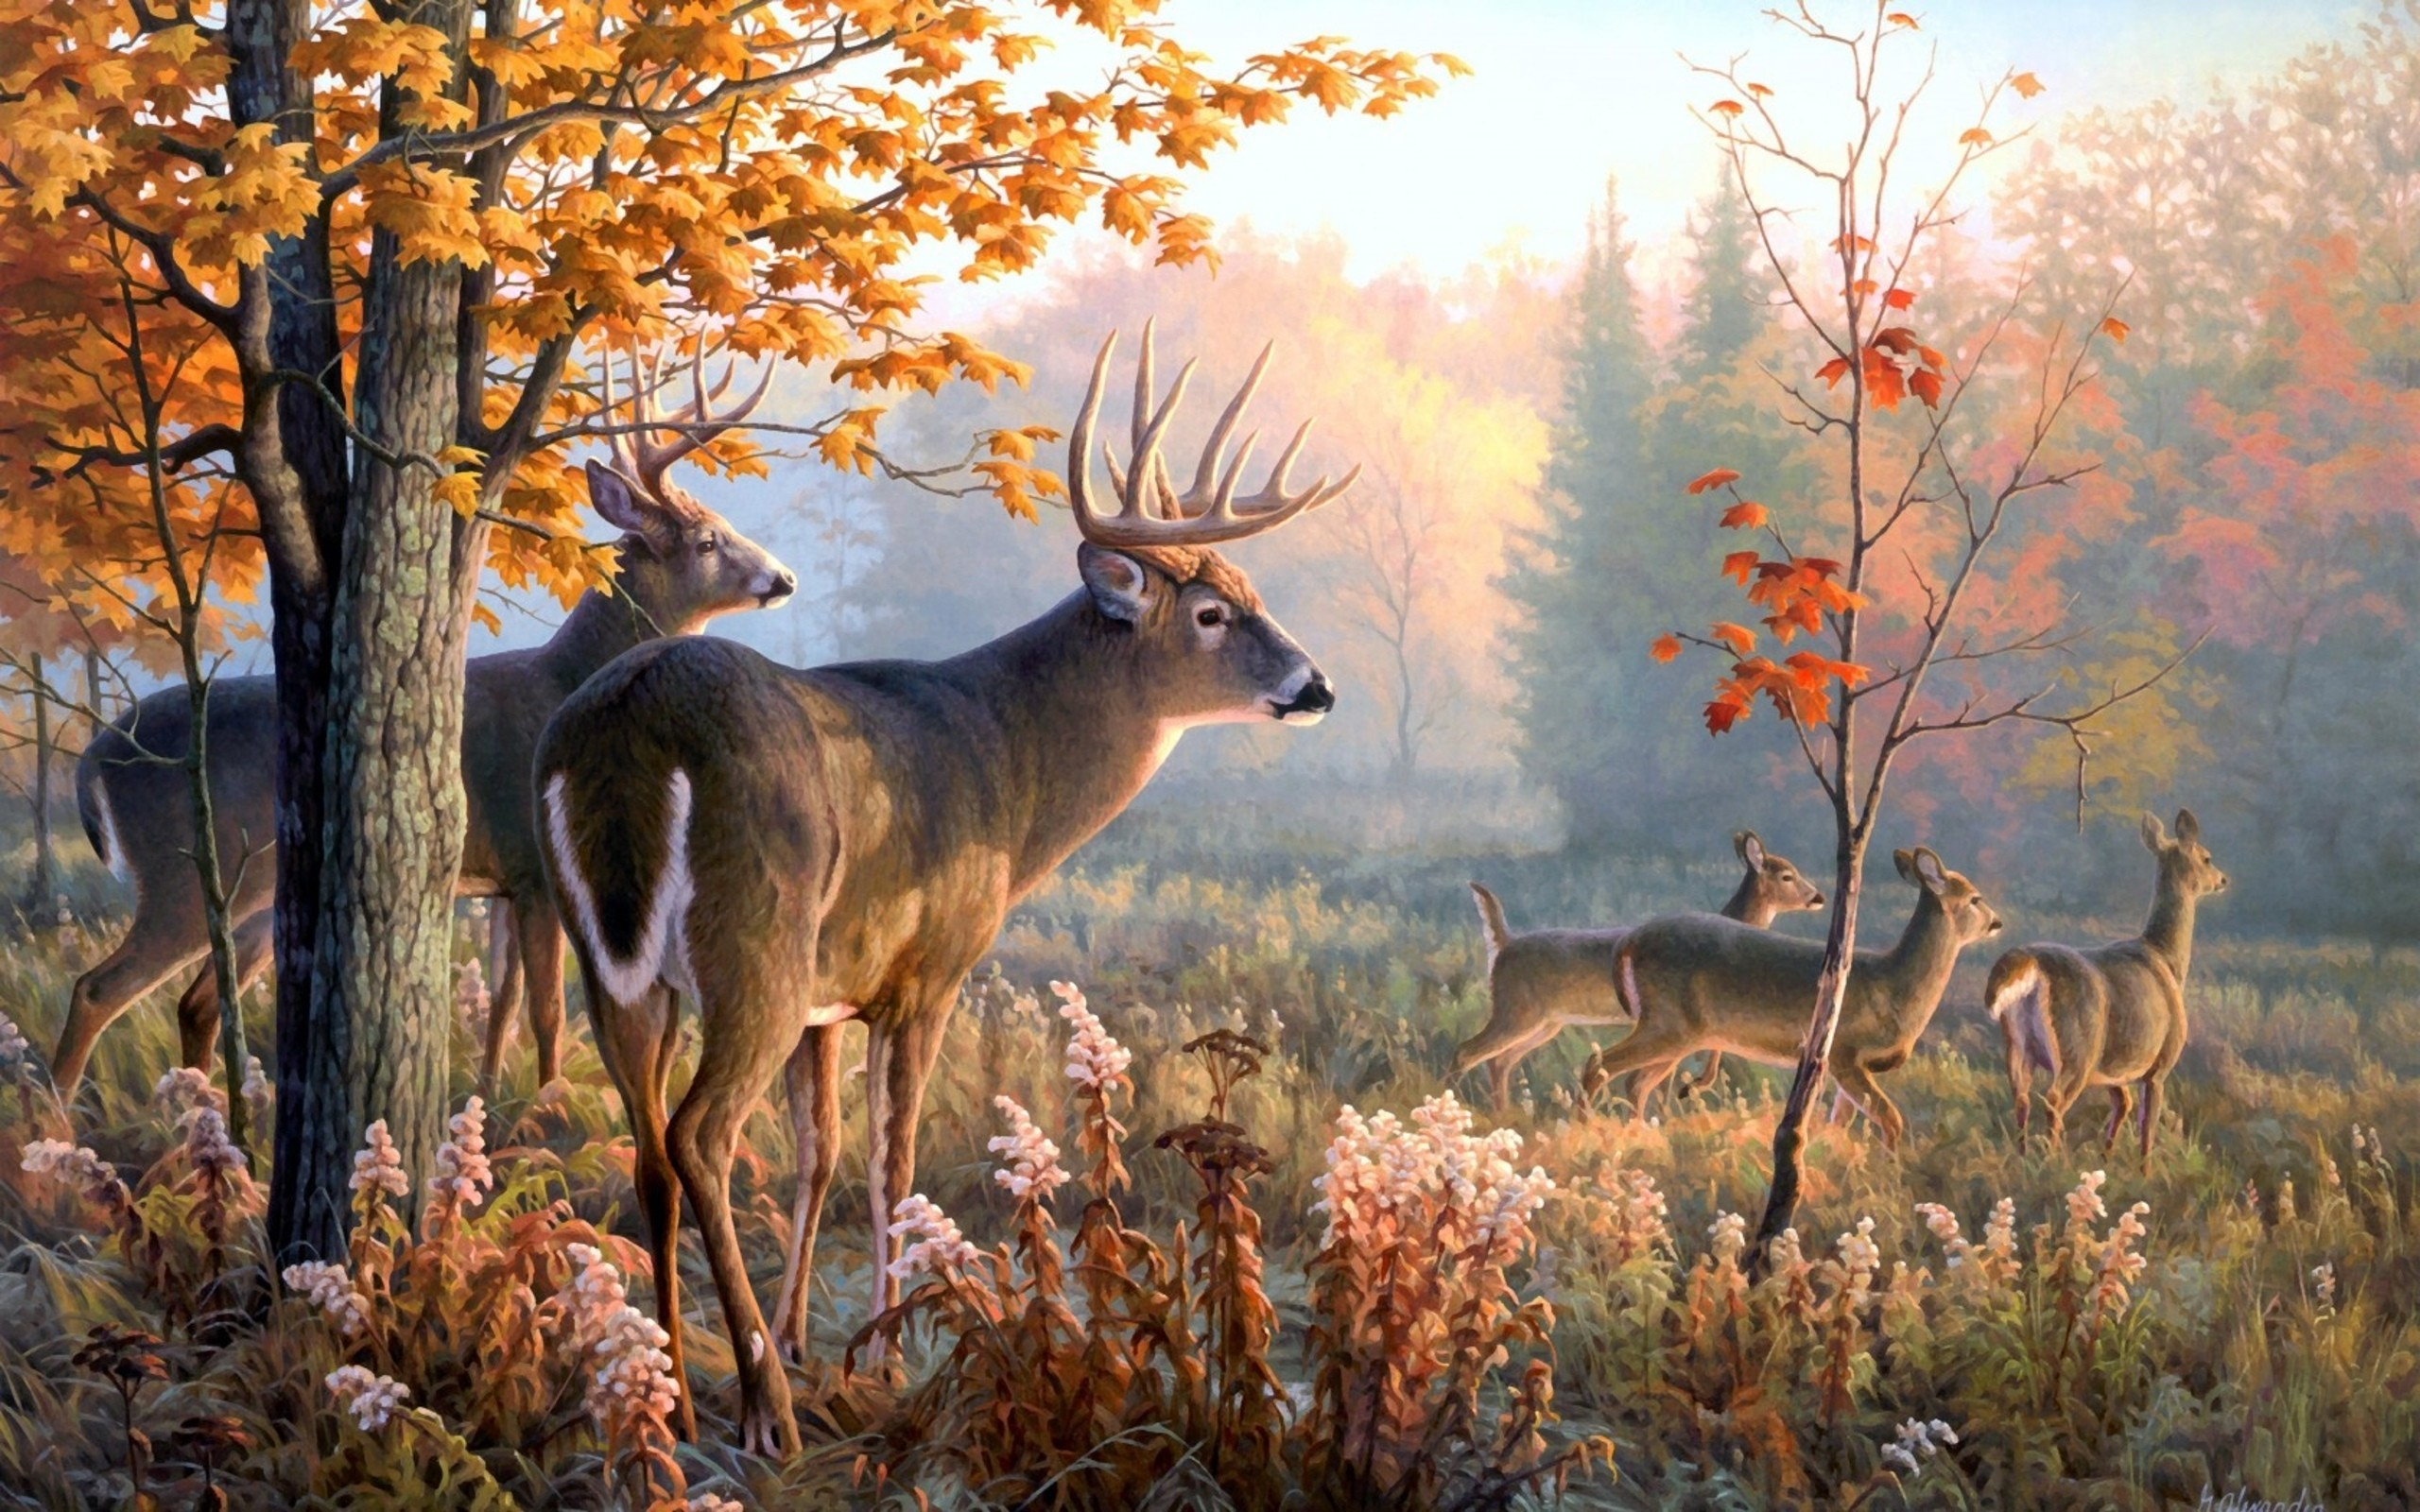 2560x1600 Deer Wallpaper 301562 1249.45 KB